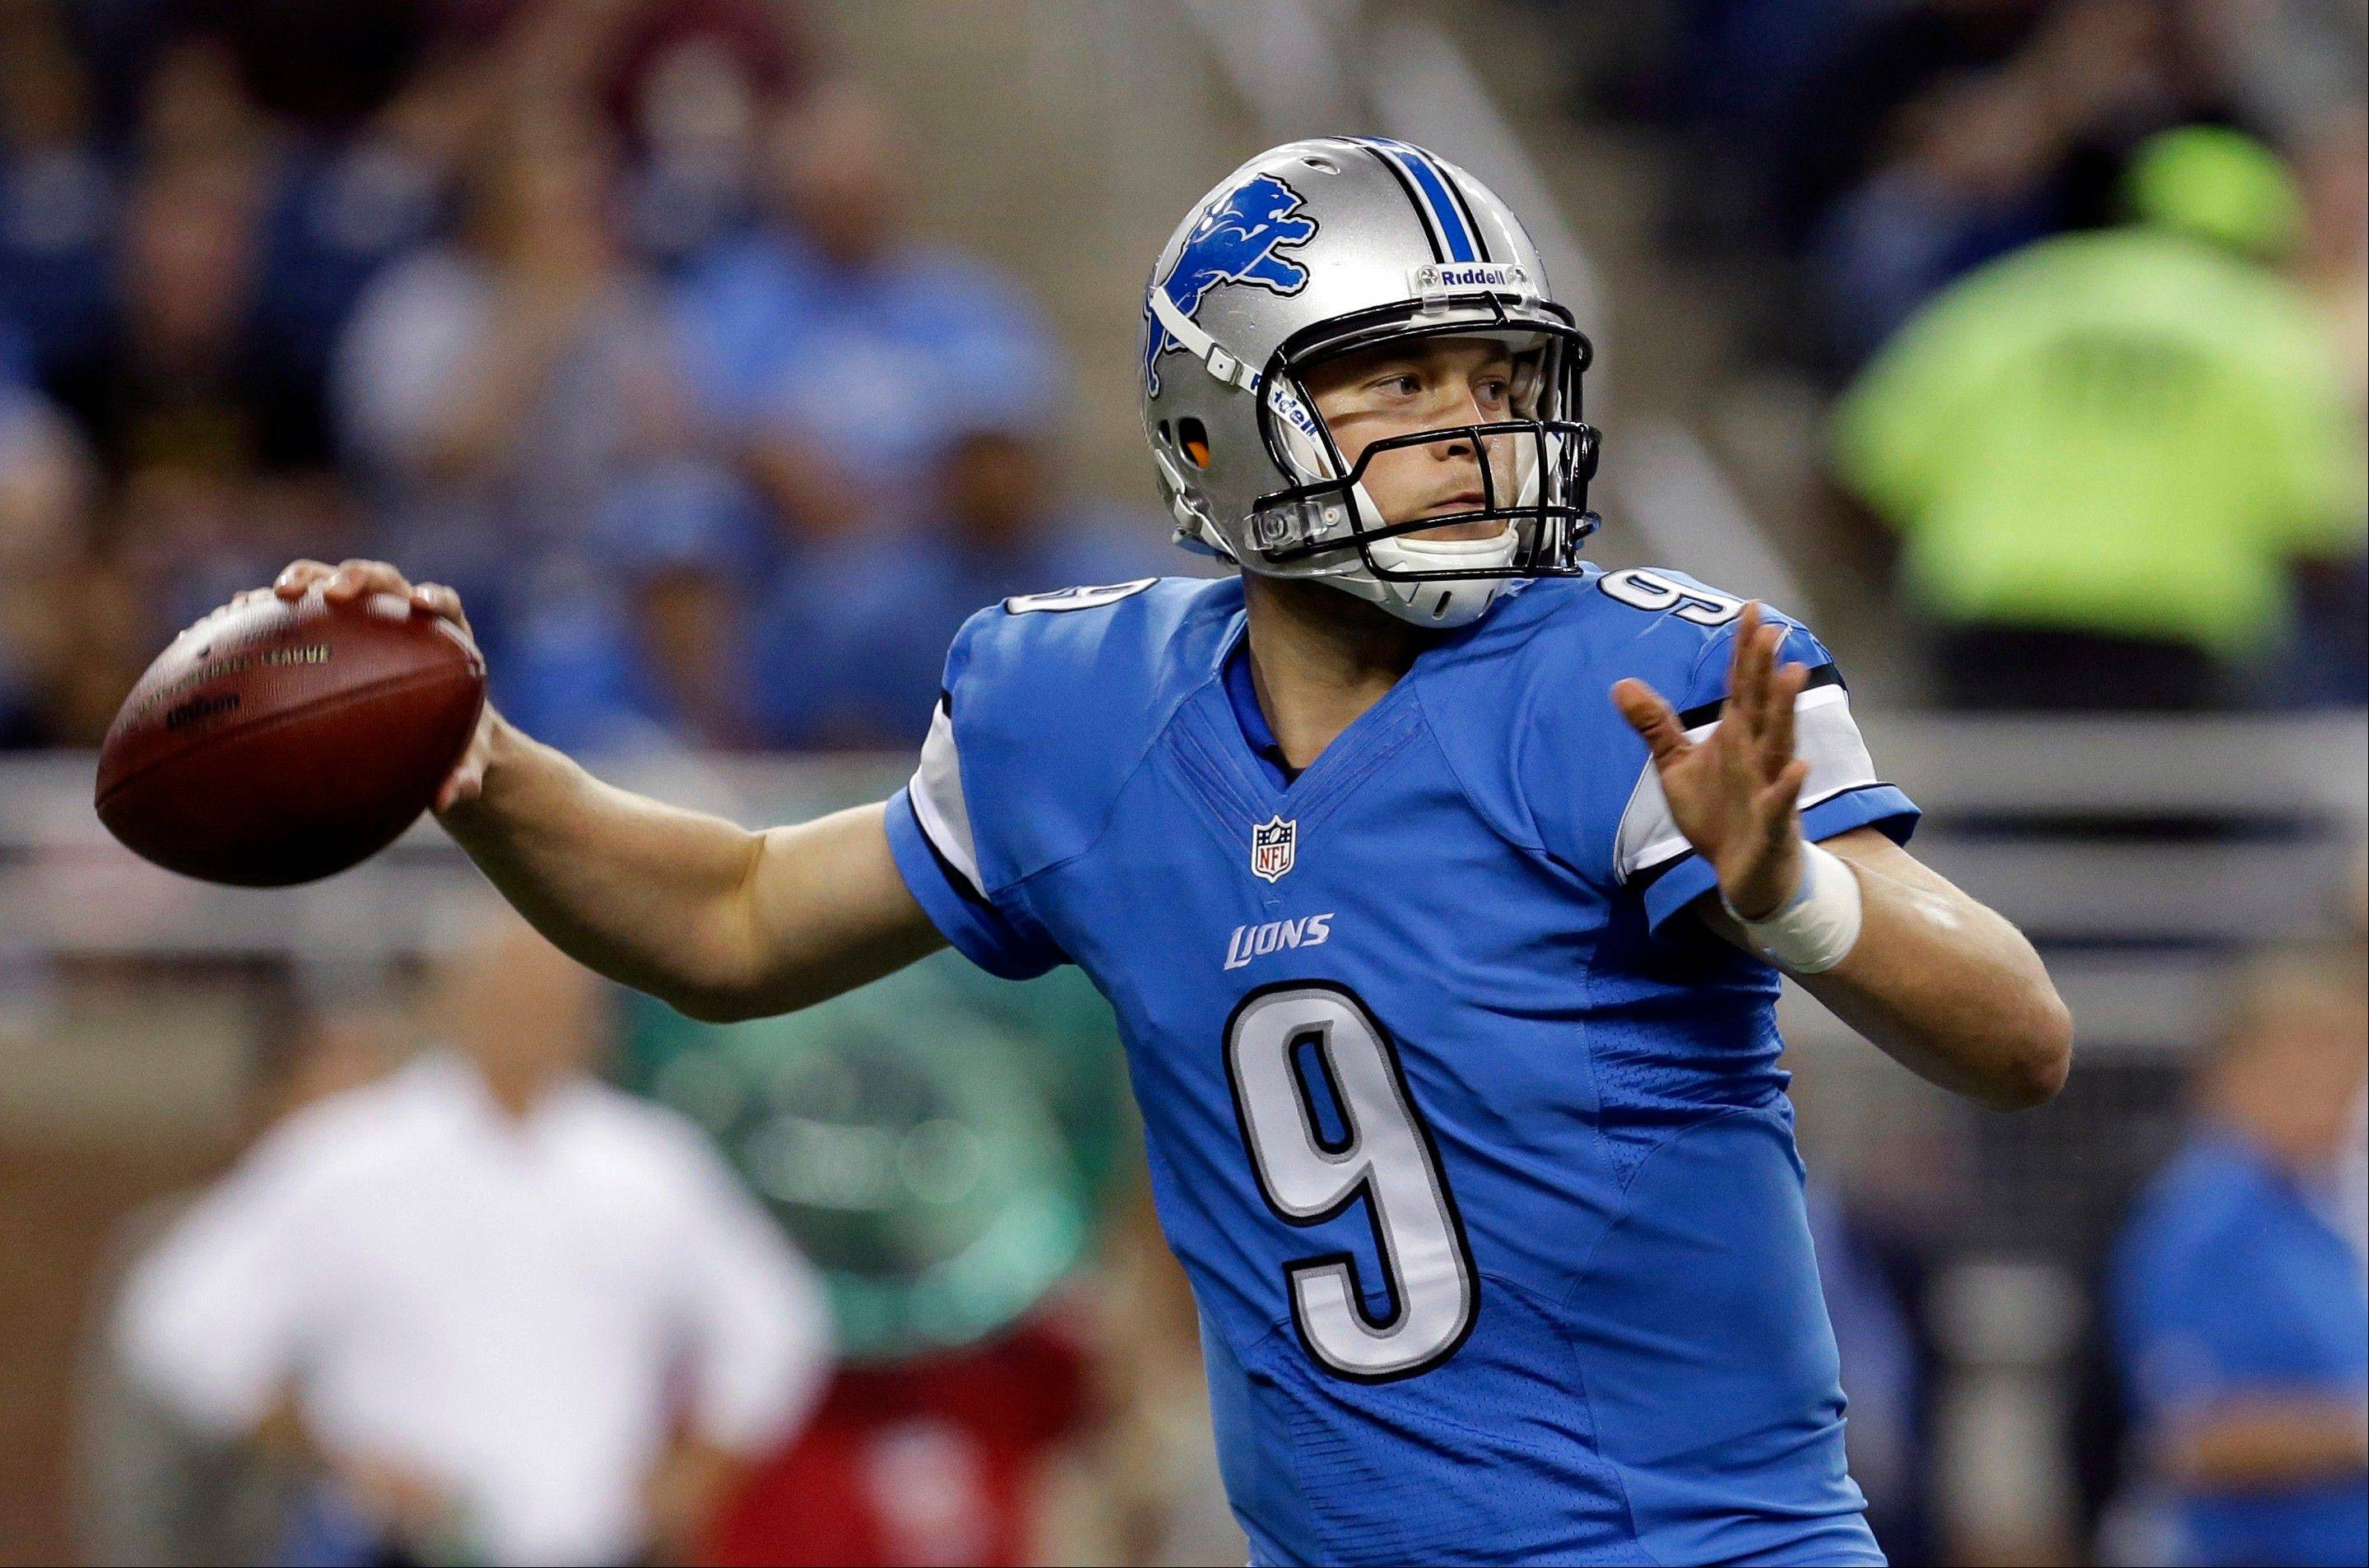 Detroit Lions quarterback Matthew Stafford has thrown for over 10,000 yards over the last two seasons, but he ended last season with an eight-game losing streak